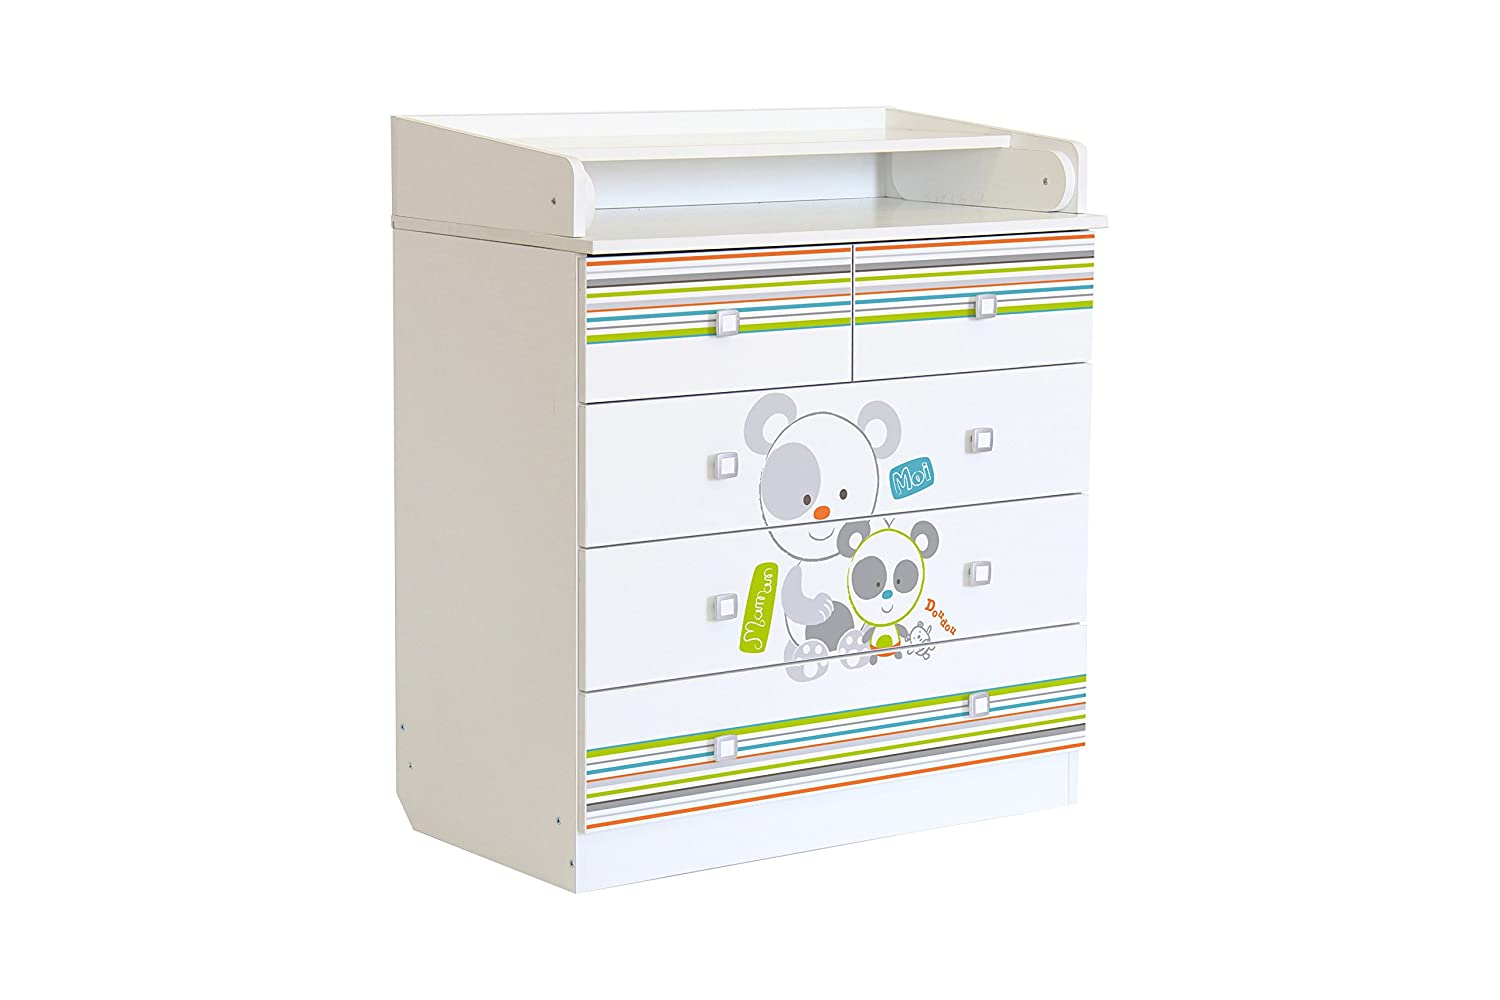 Polini Kids Simple Pandas design, cassetti, numero 1780, bianco HESS Polini Kids_0001315.9.4